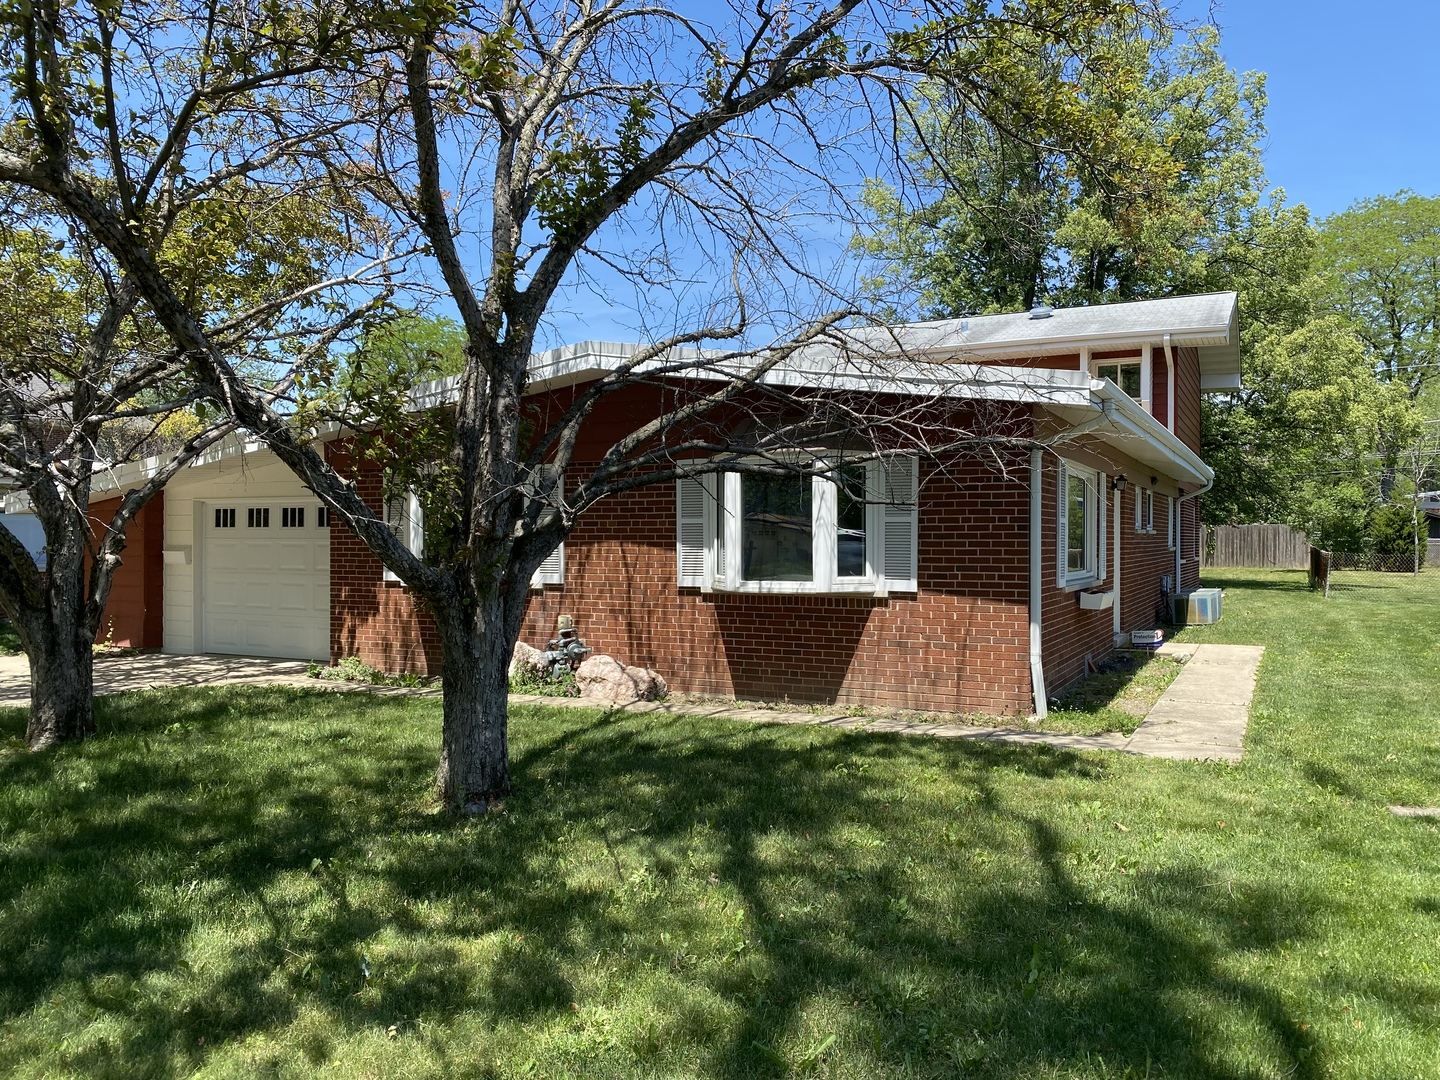 4626 Lilac Avenue, Glenview, Illinois 60025, 4 Bedrooms Bedrooms, ,3 BathroomsBathrooms,Residential,For Sale,Lilac,MRD11149880